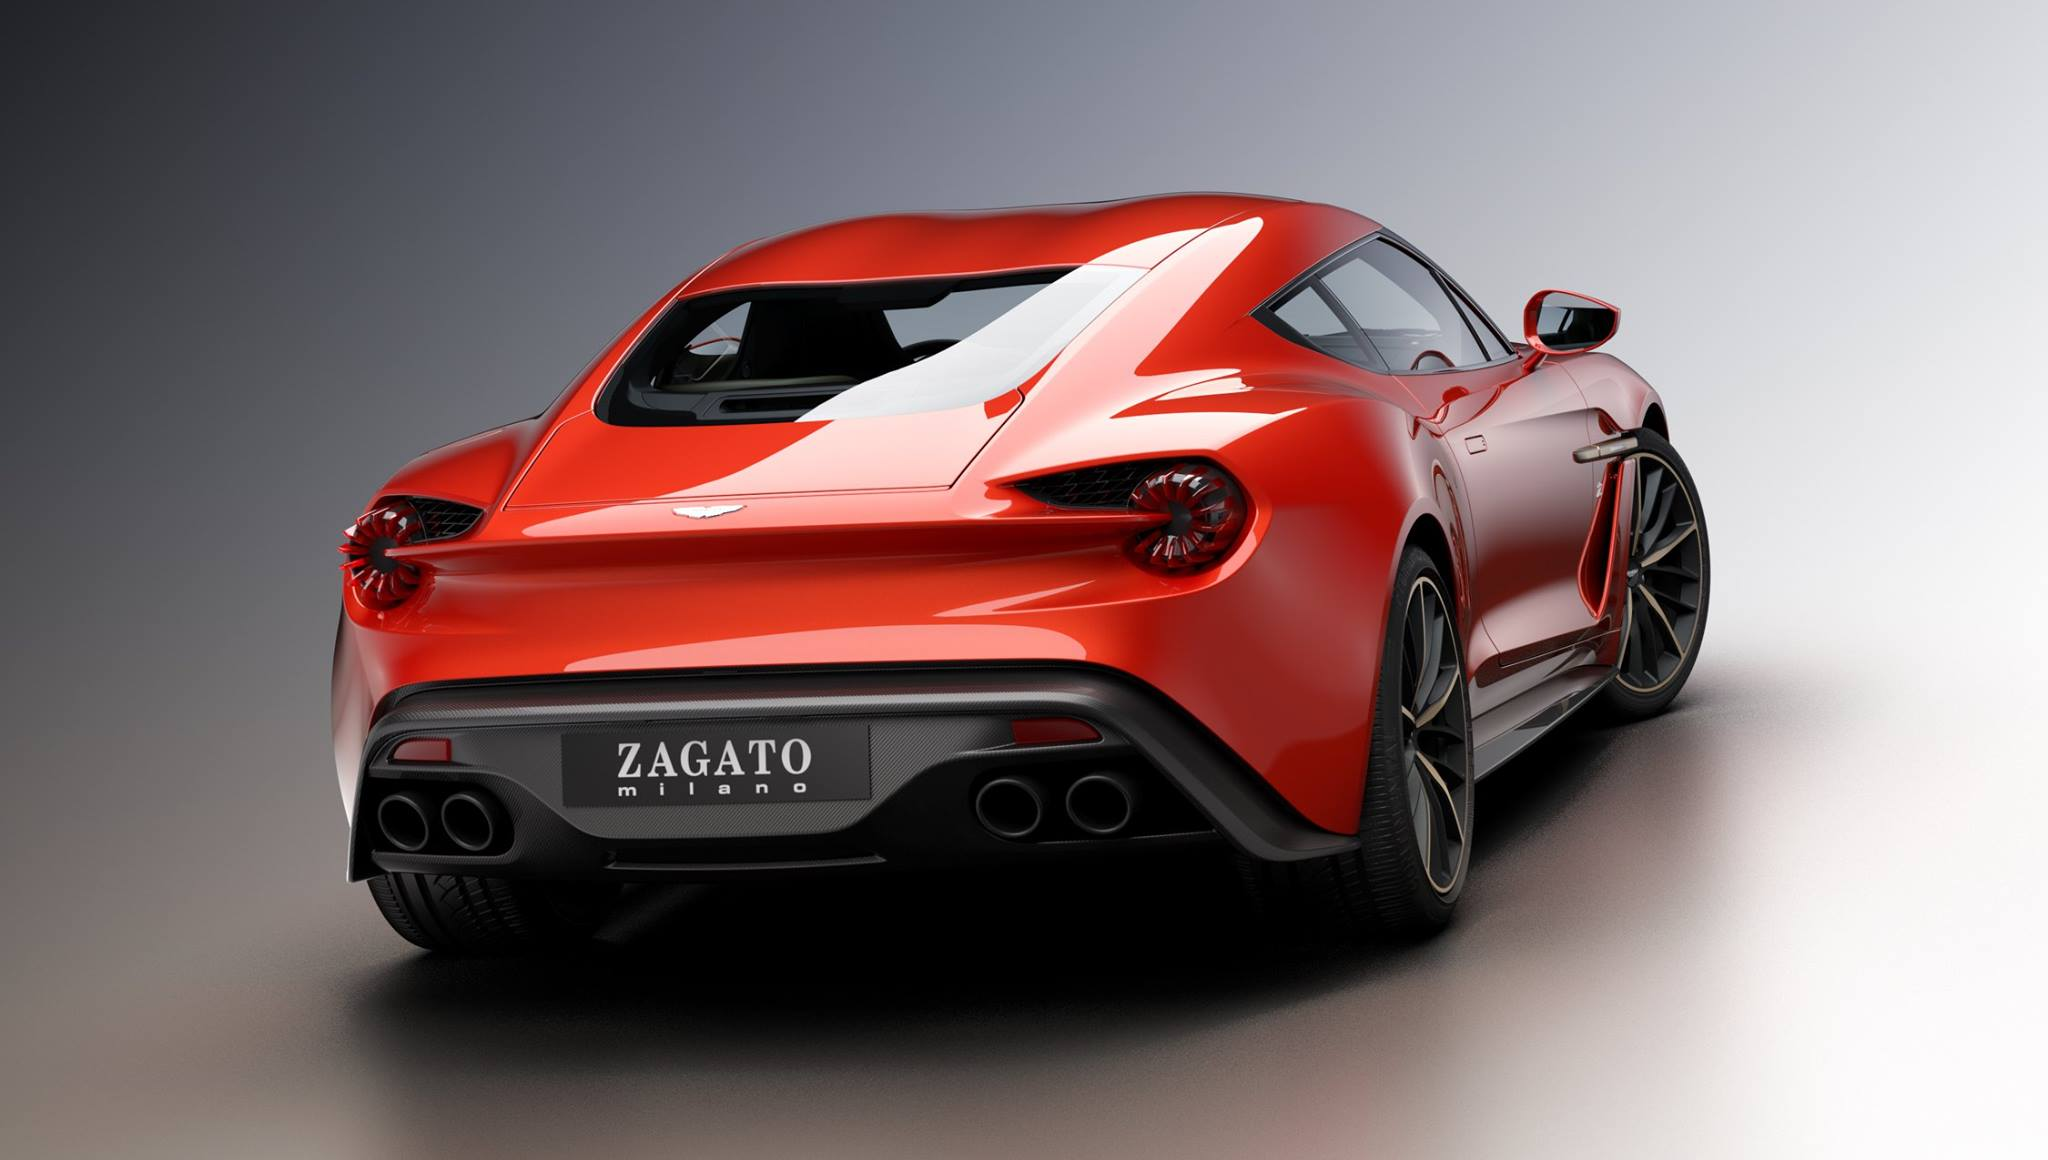 Aston Martin Vanquish Zagato Full hd wallpapers